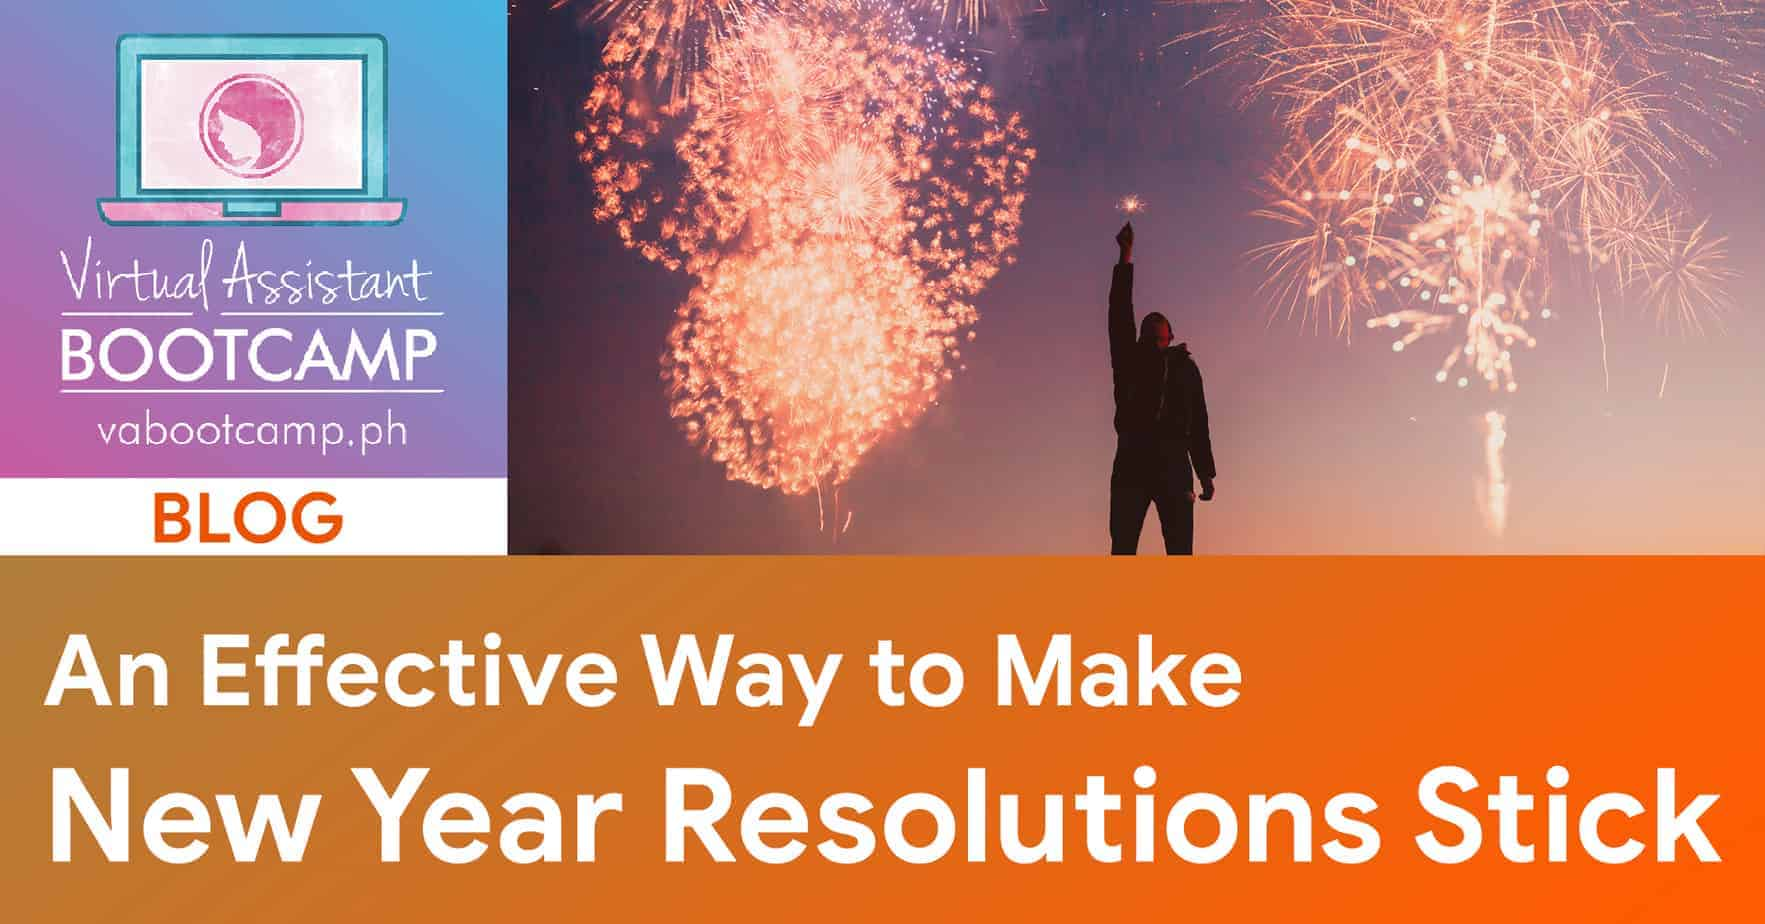 An Effective Way to Make New Year Resolutions Stick